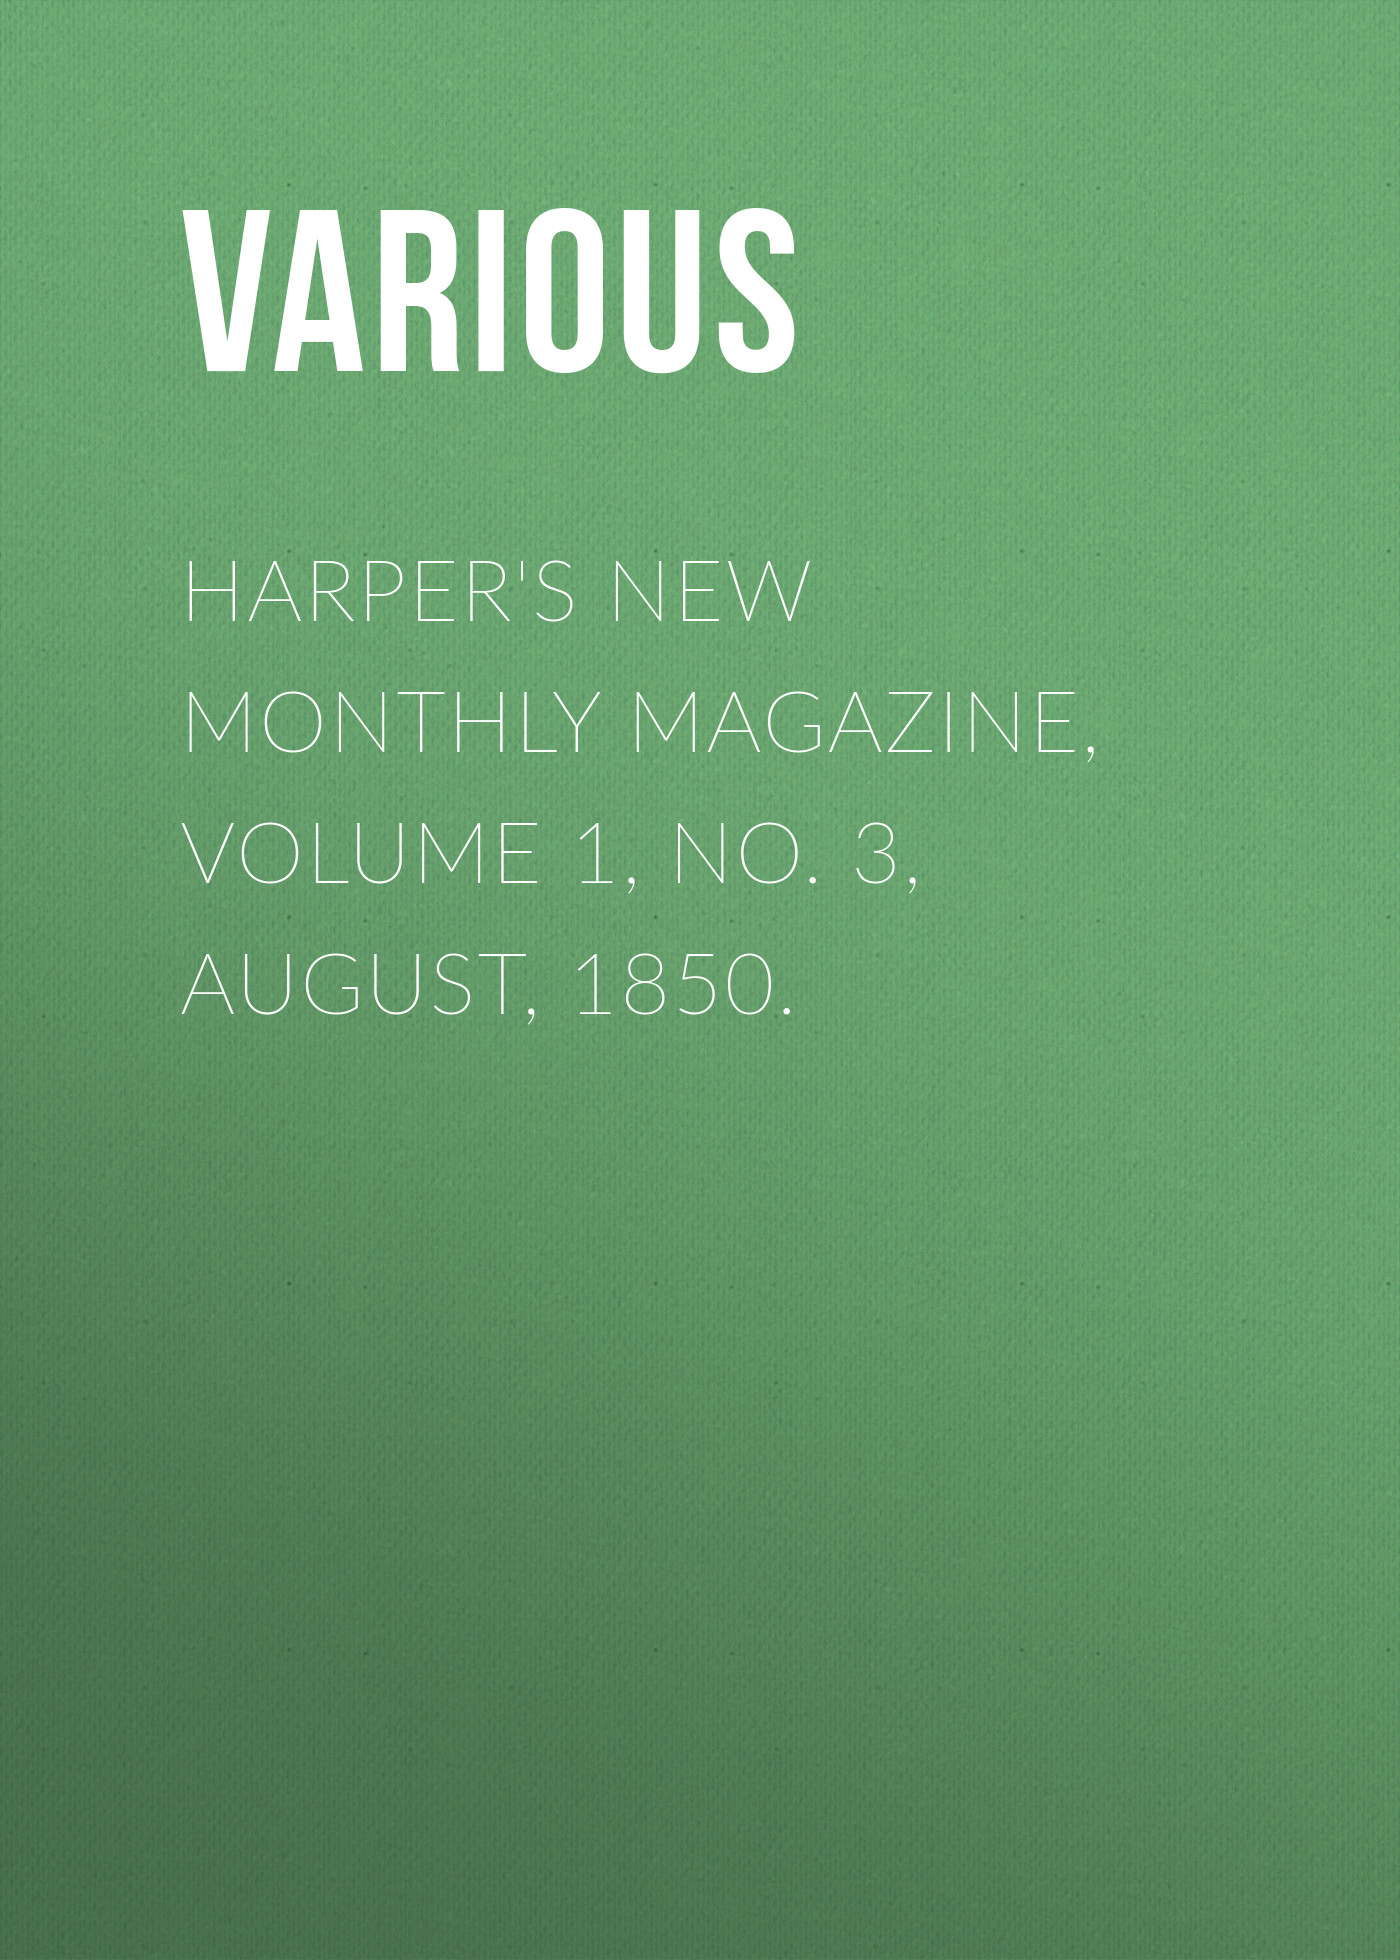 Various Harper's New Monthly Magazine, Volume 1, No. 3, August, 1850. hoodz dvd magazine issue 1